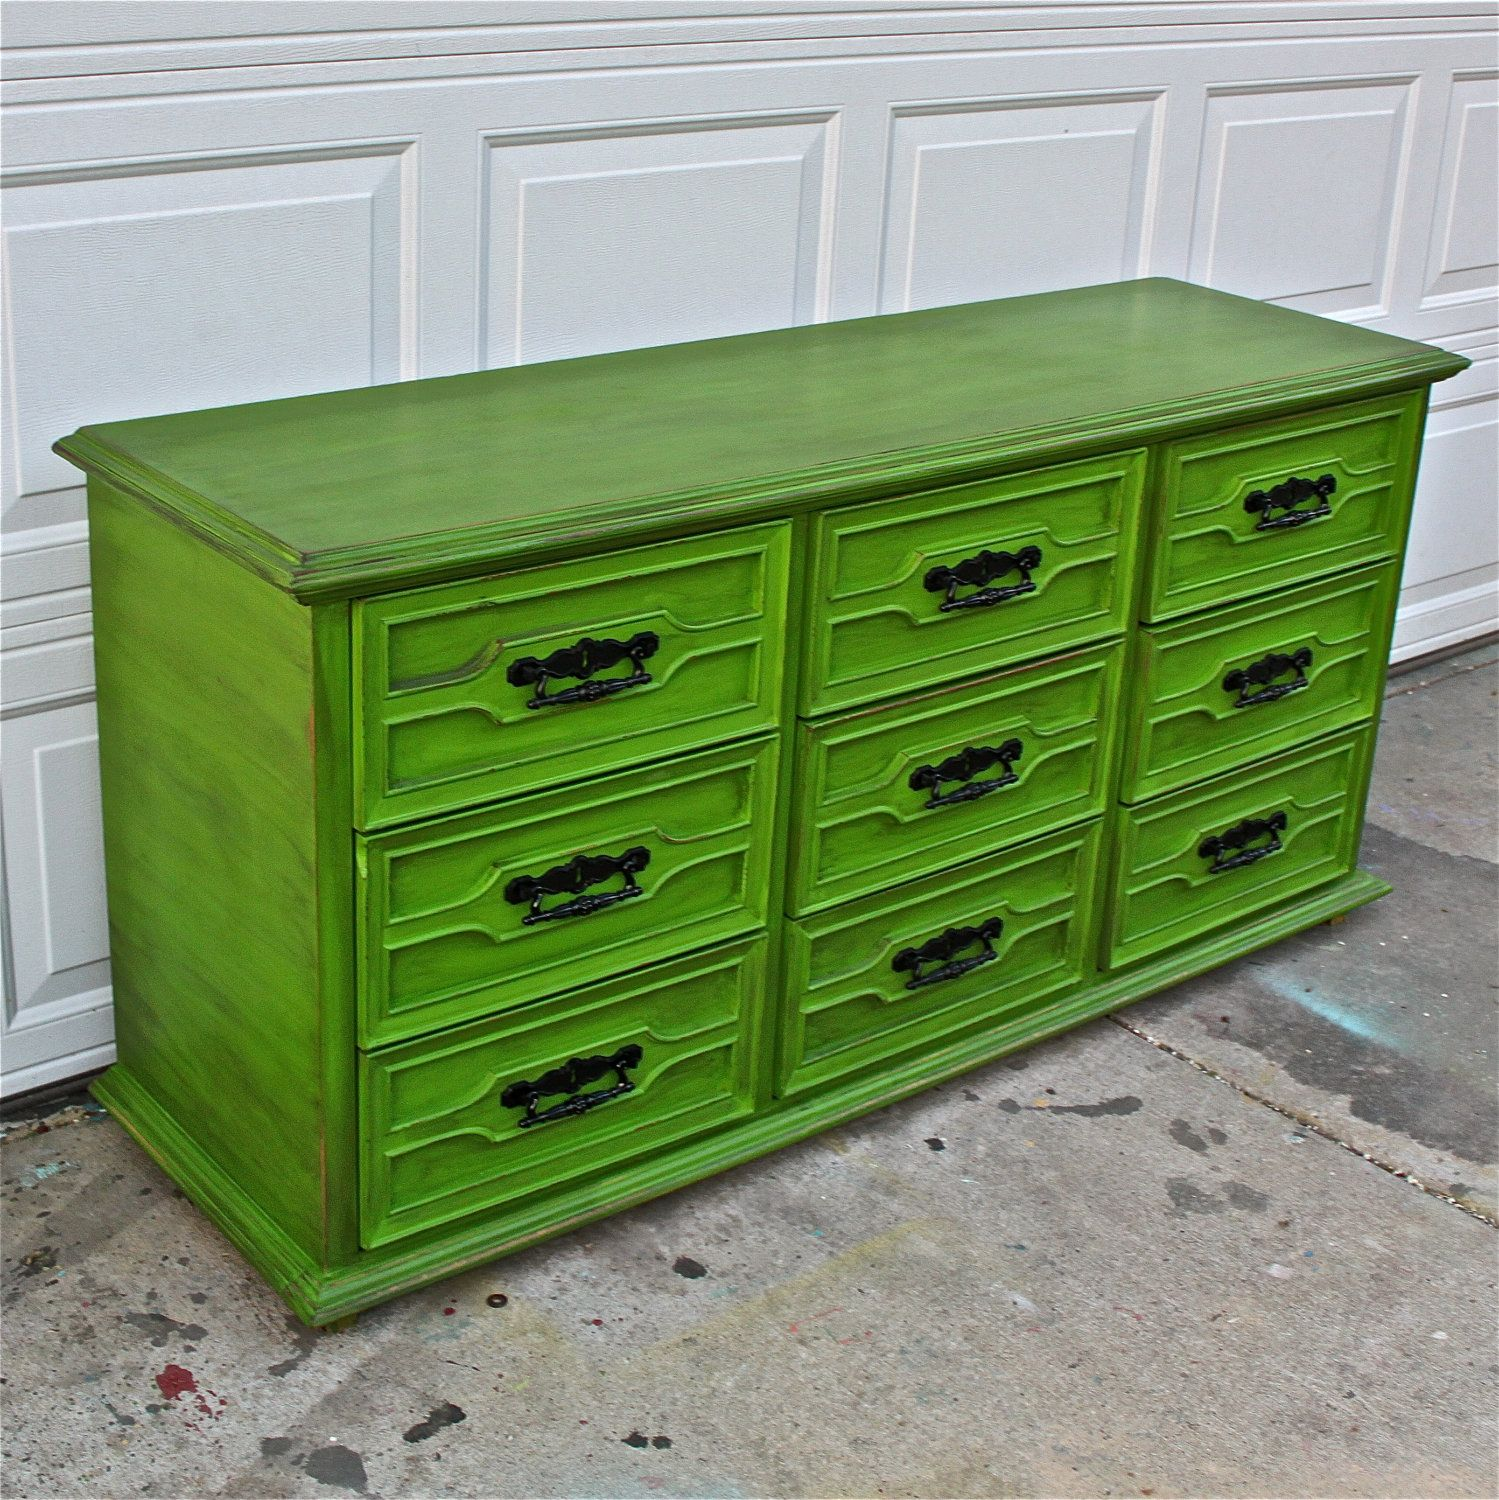 Green Vintage Dresser Bright Buffet Bedroom Furniture Distressed Black Drawer Pulls TV Stand Storage Dining Room